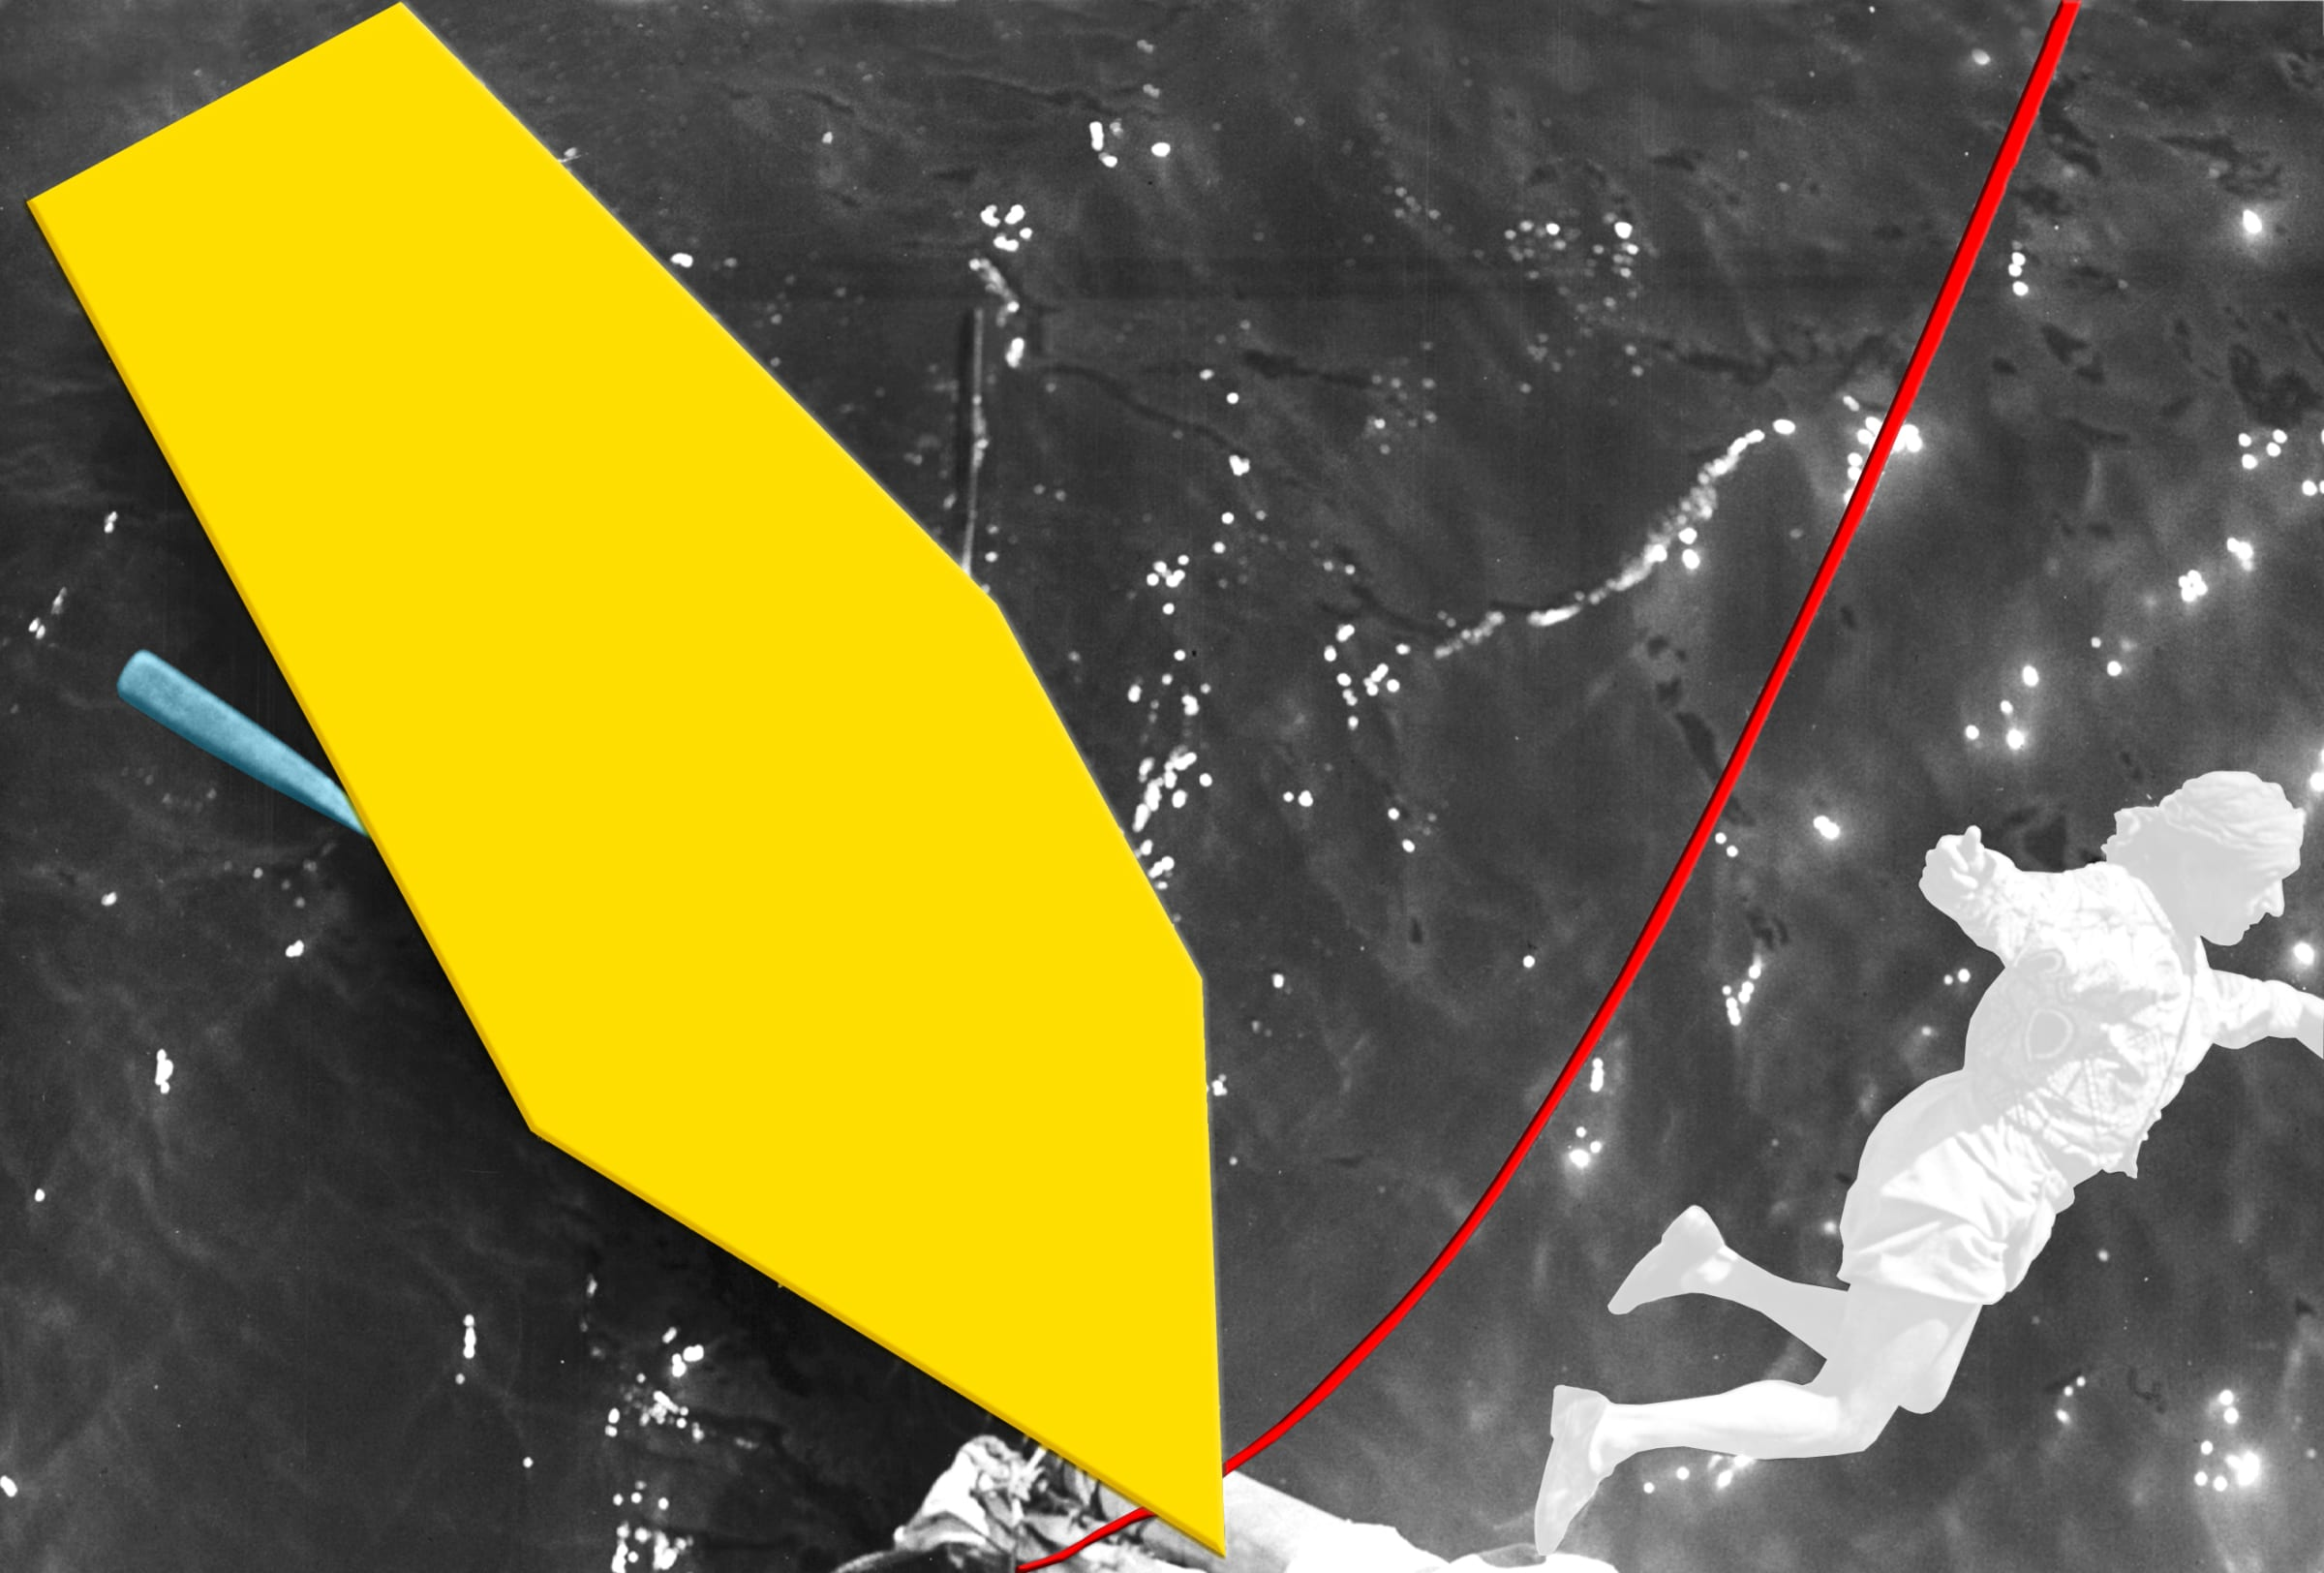 John Baldessari, Blockage (Yellow): With Person (White), Oar (Blue) and Rope (Red), 2005